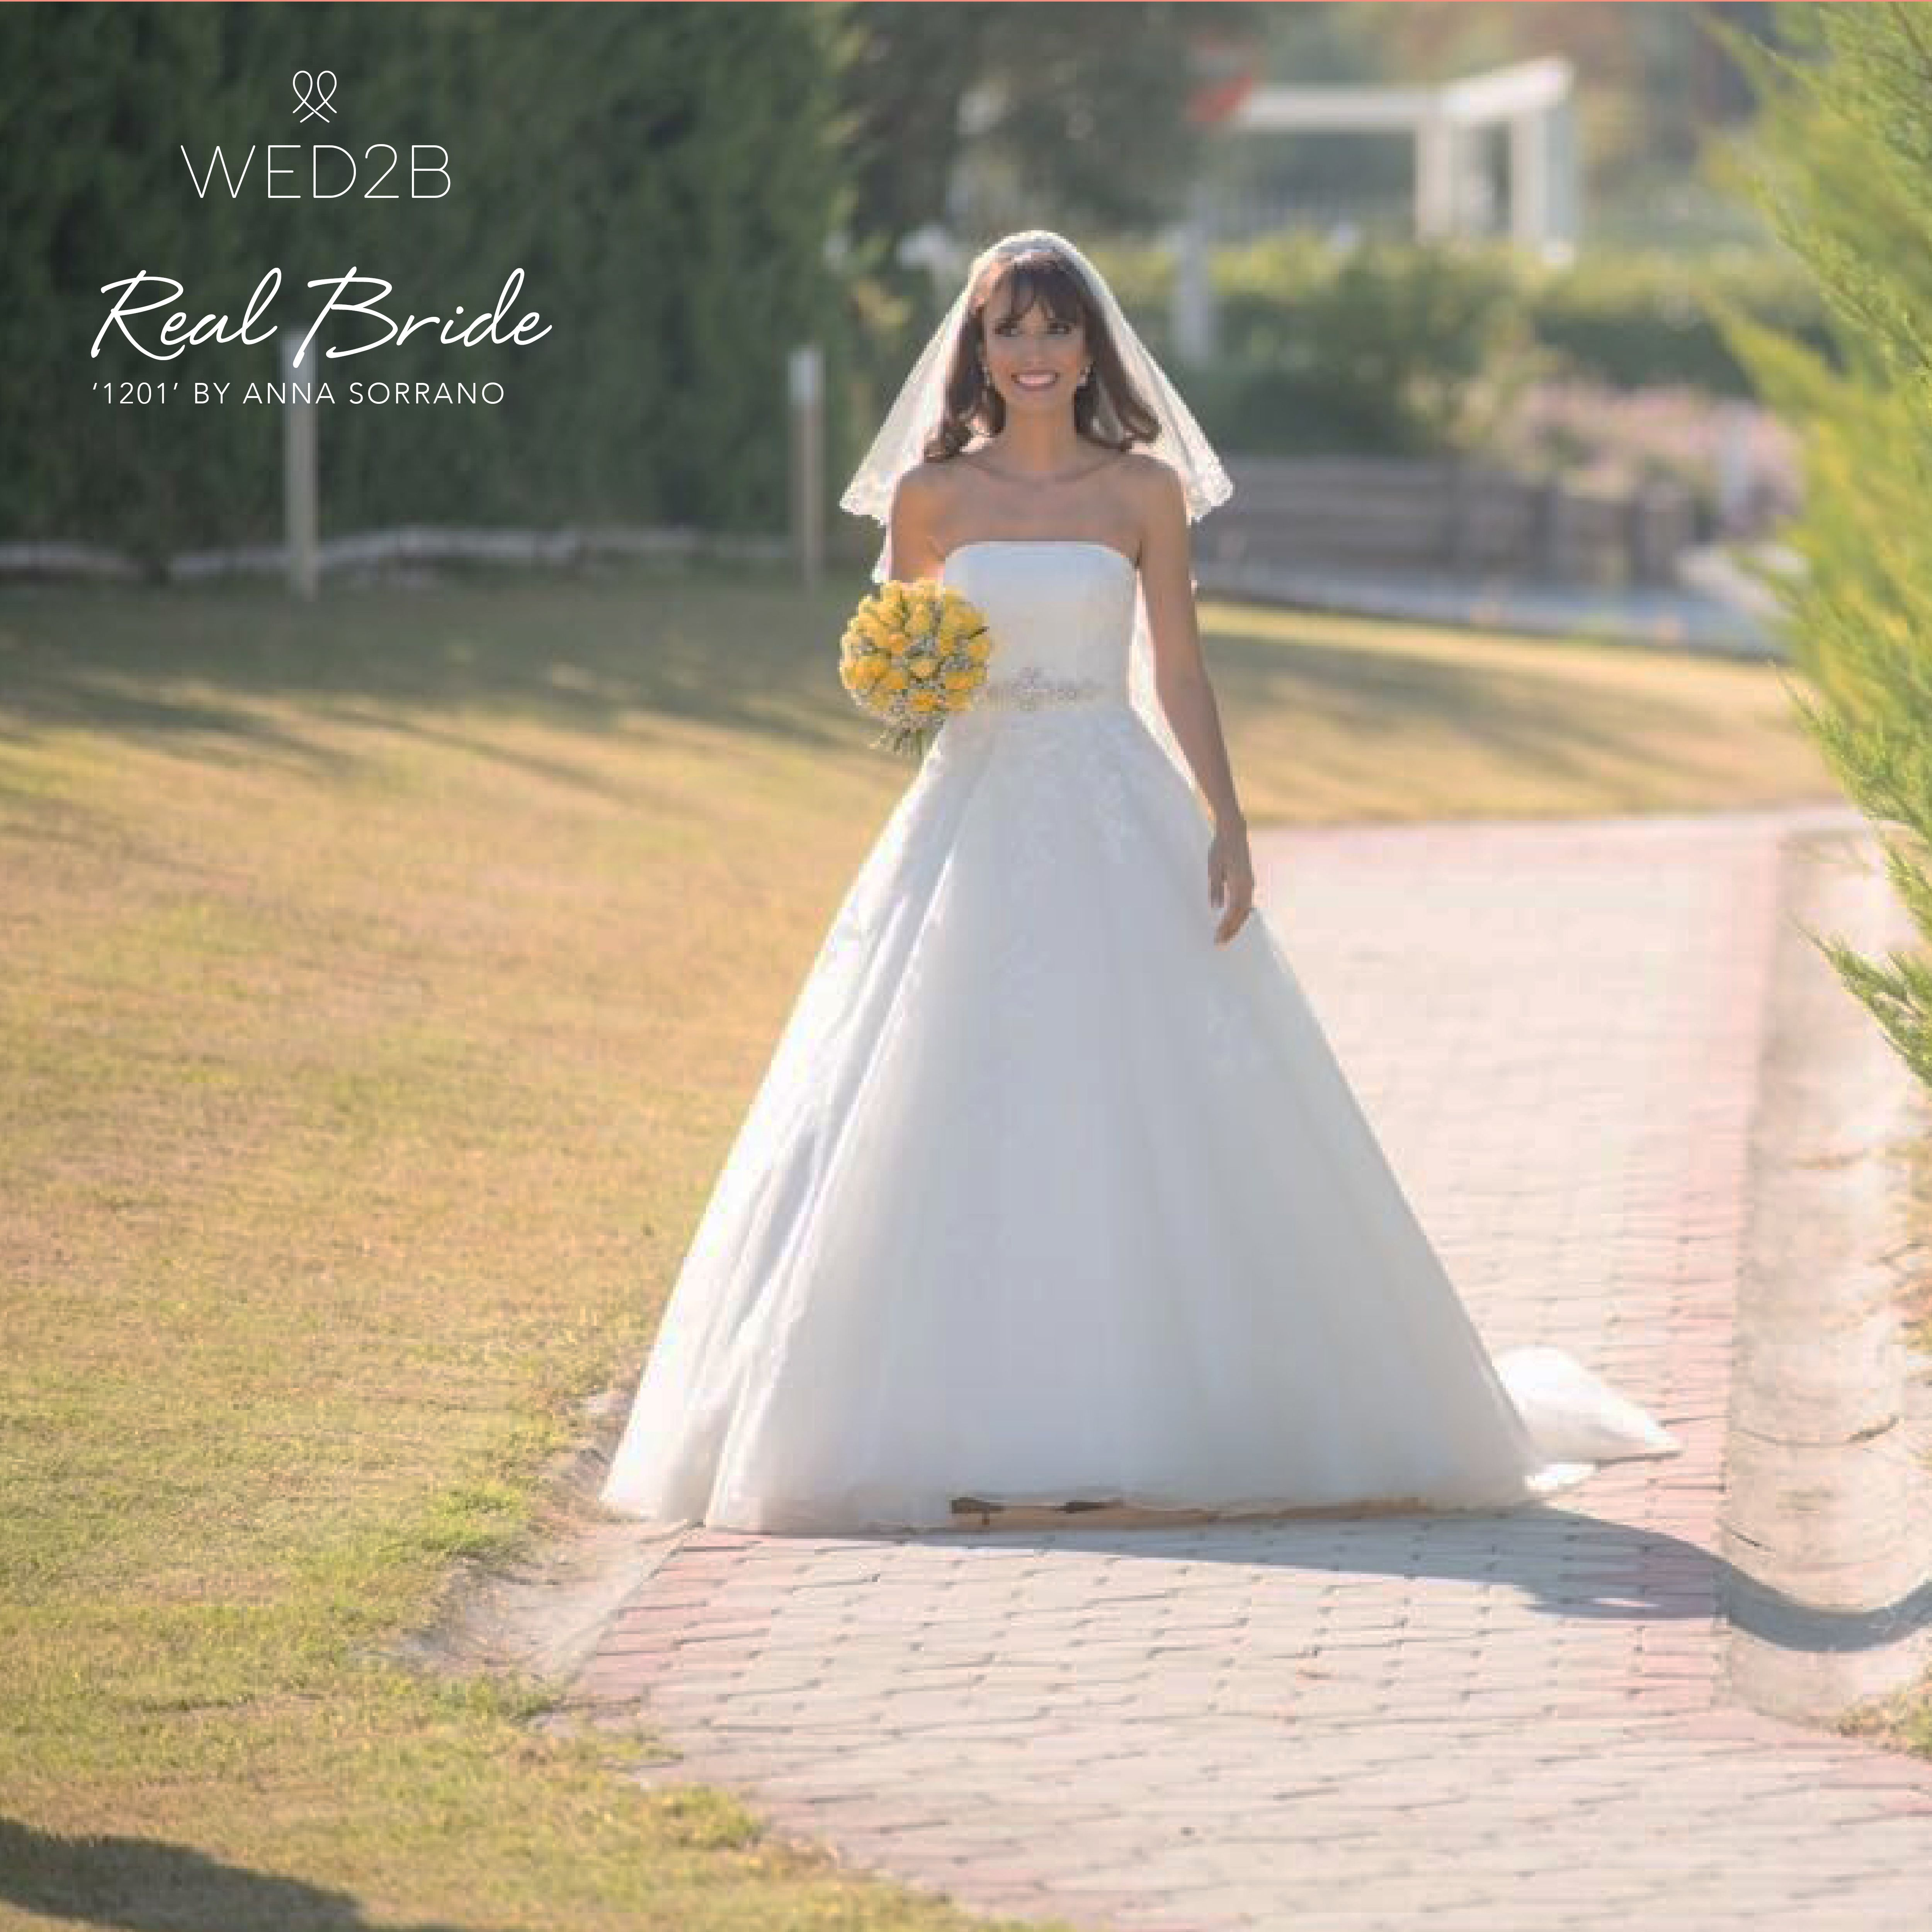 Real Brides Wed2b: A Beautiful Real Bride Luana, Looks Absolutely Stunning In